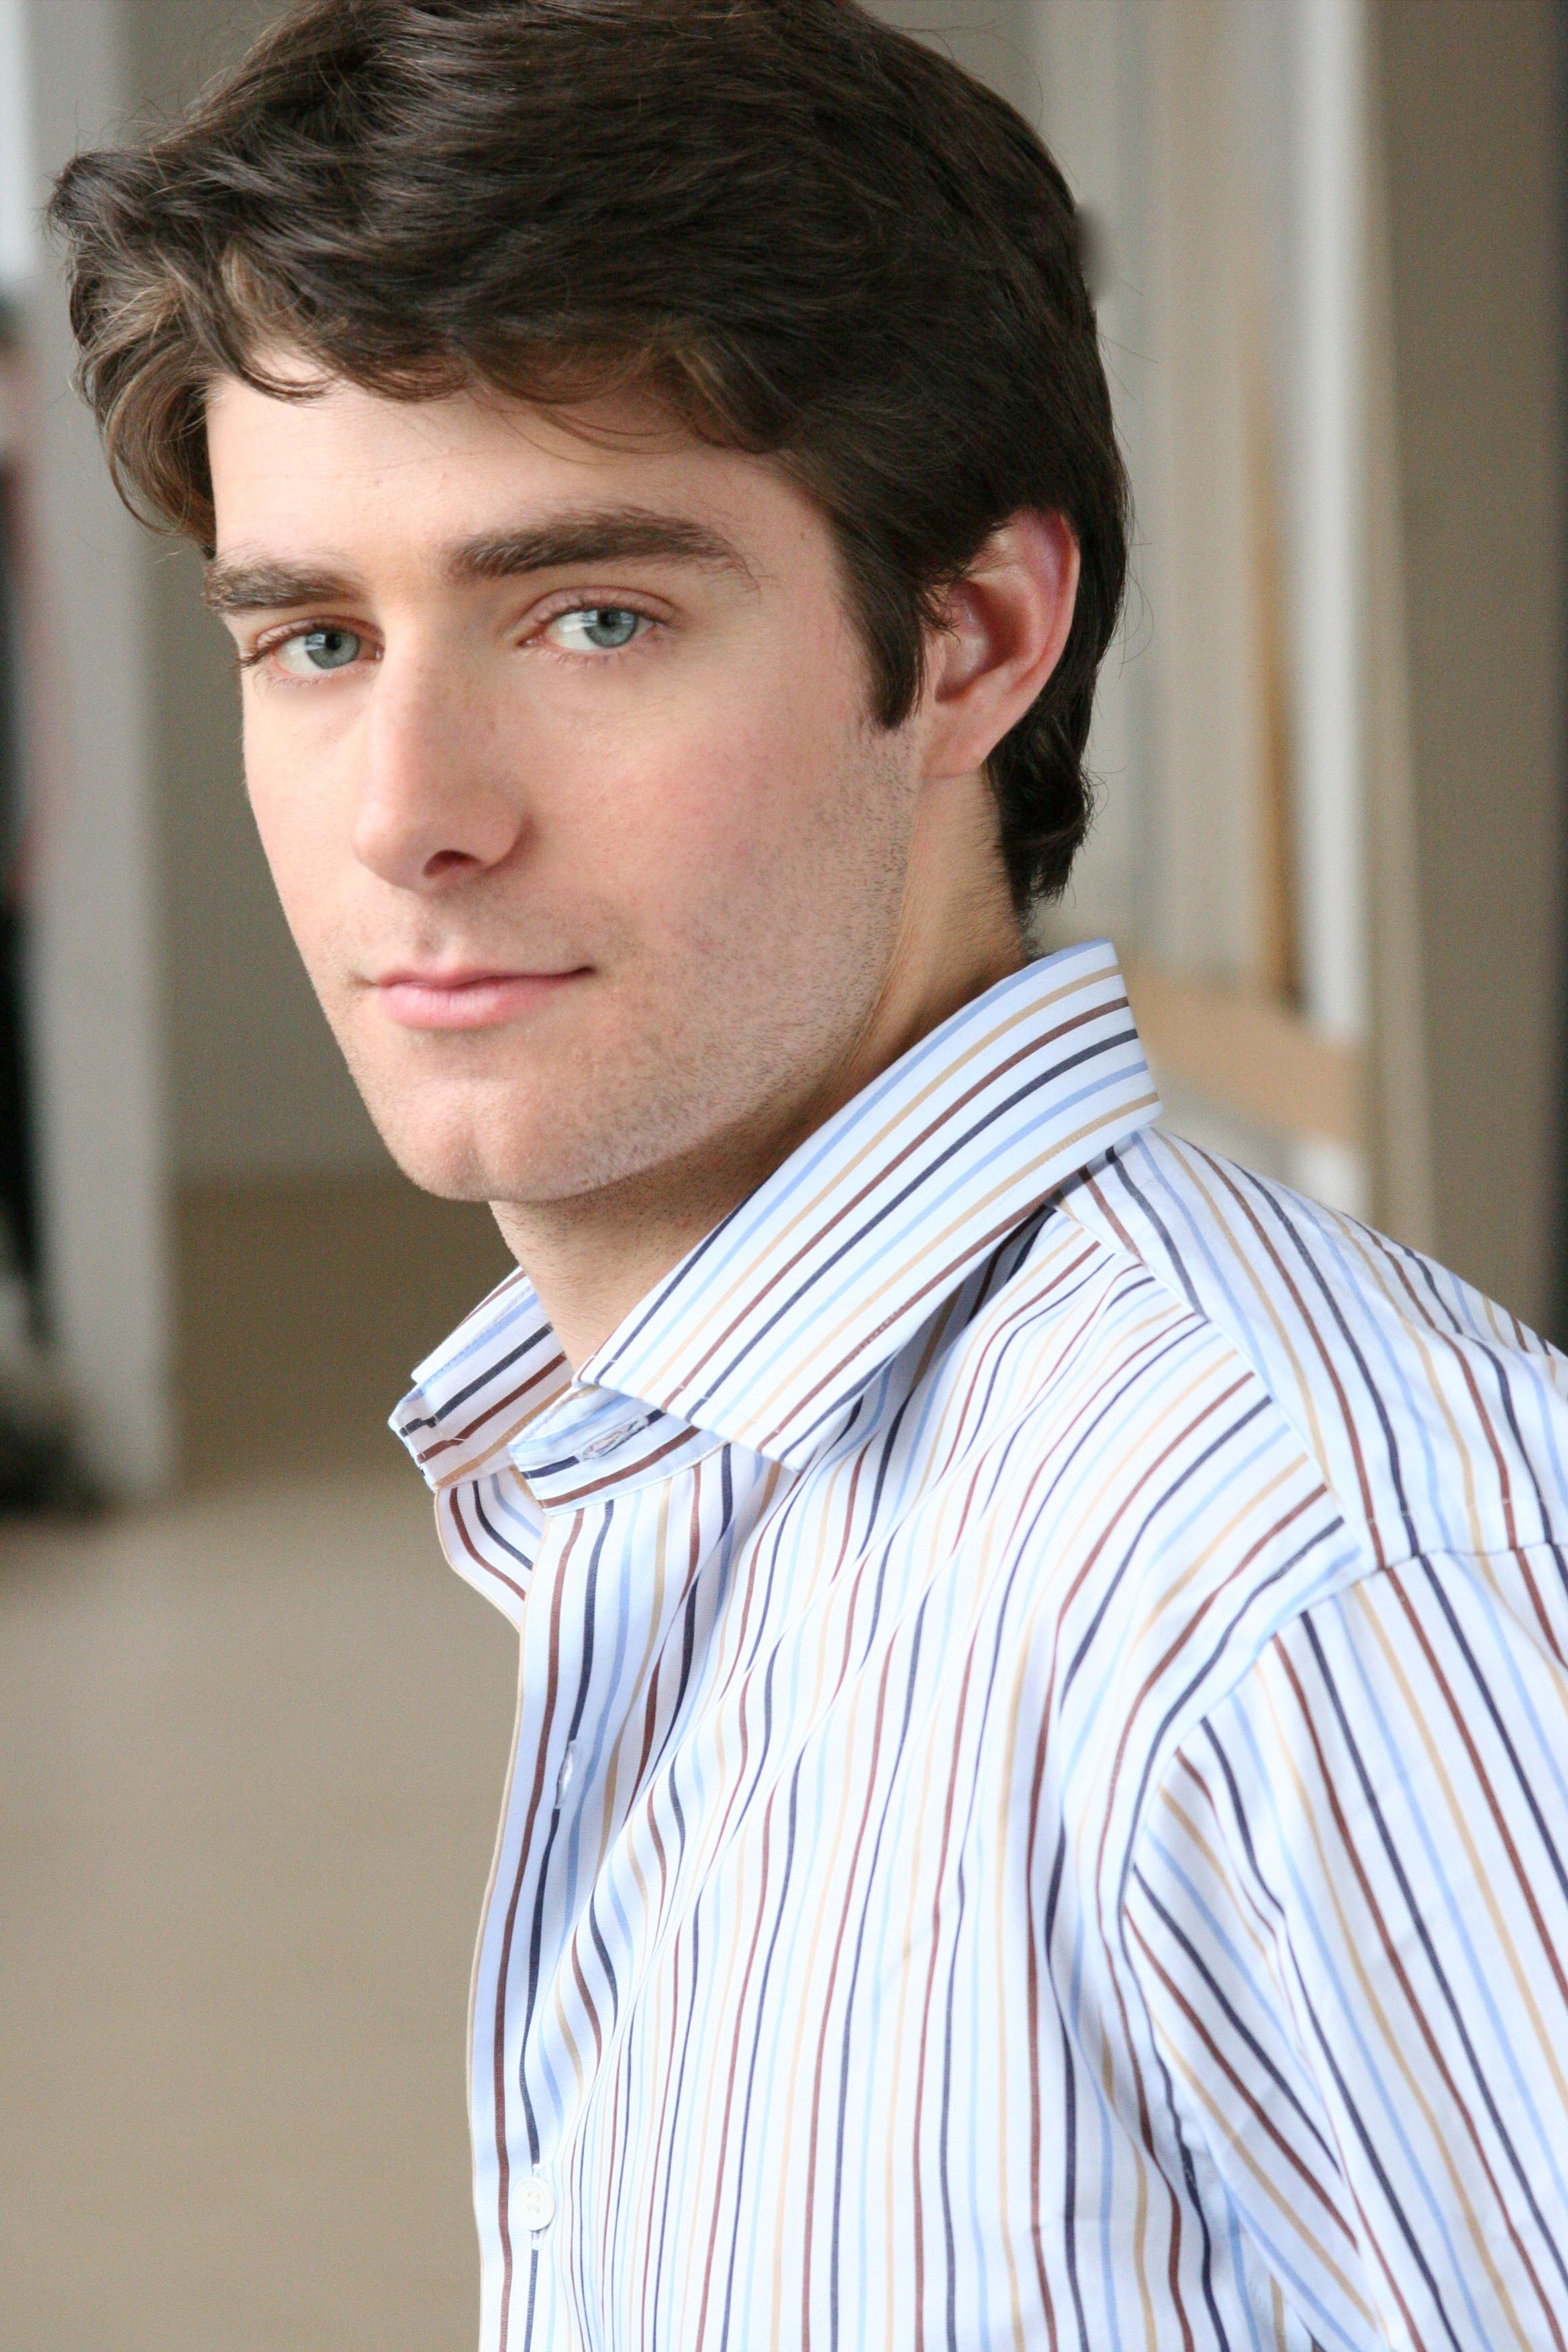 Andrew Gehling